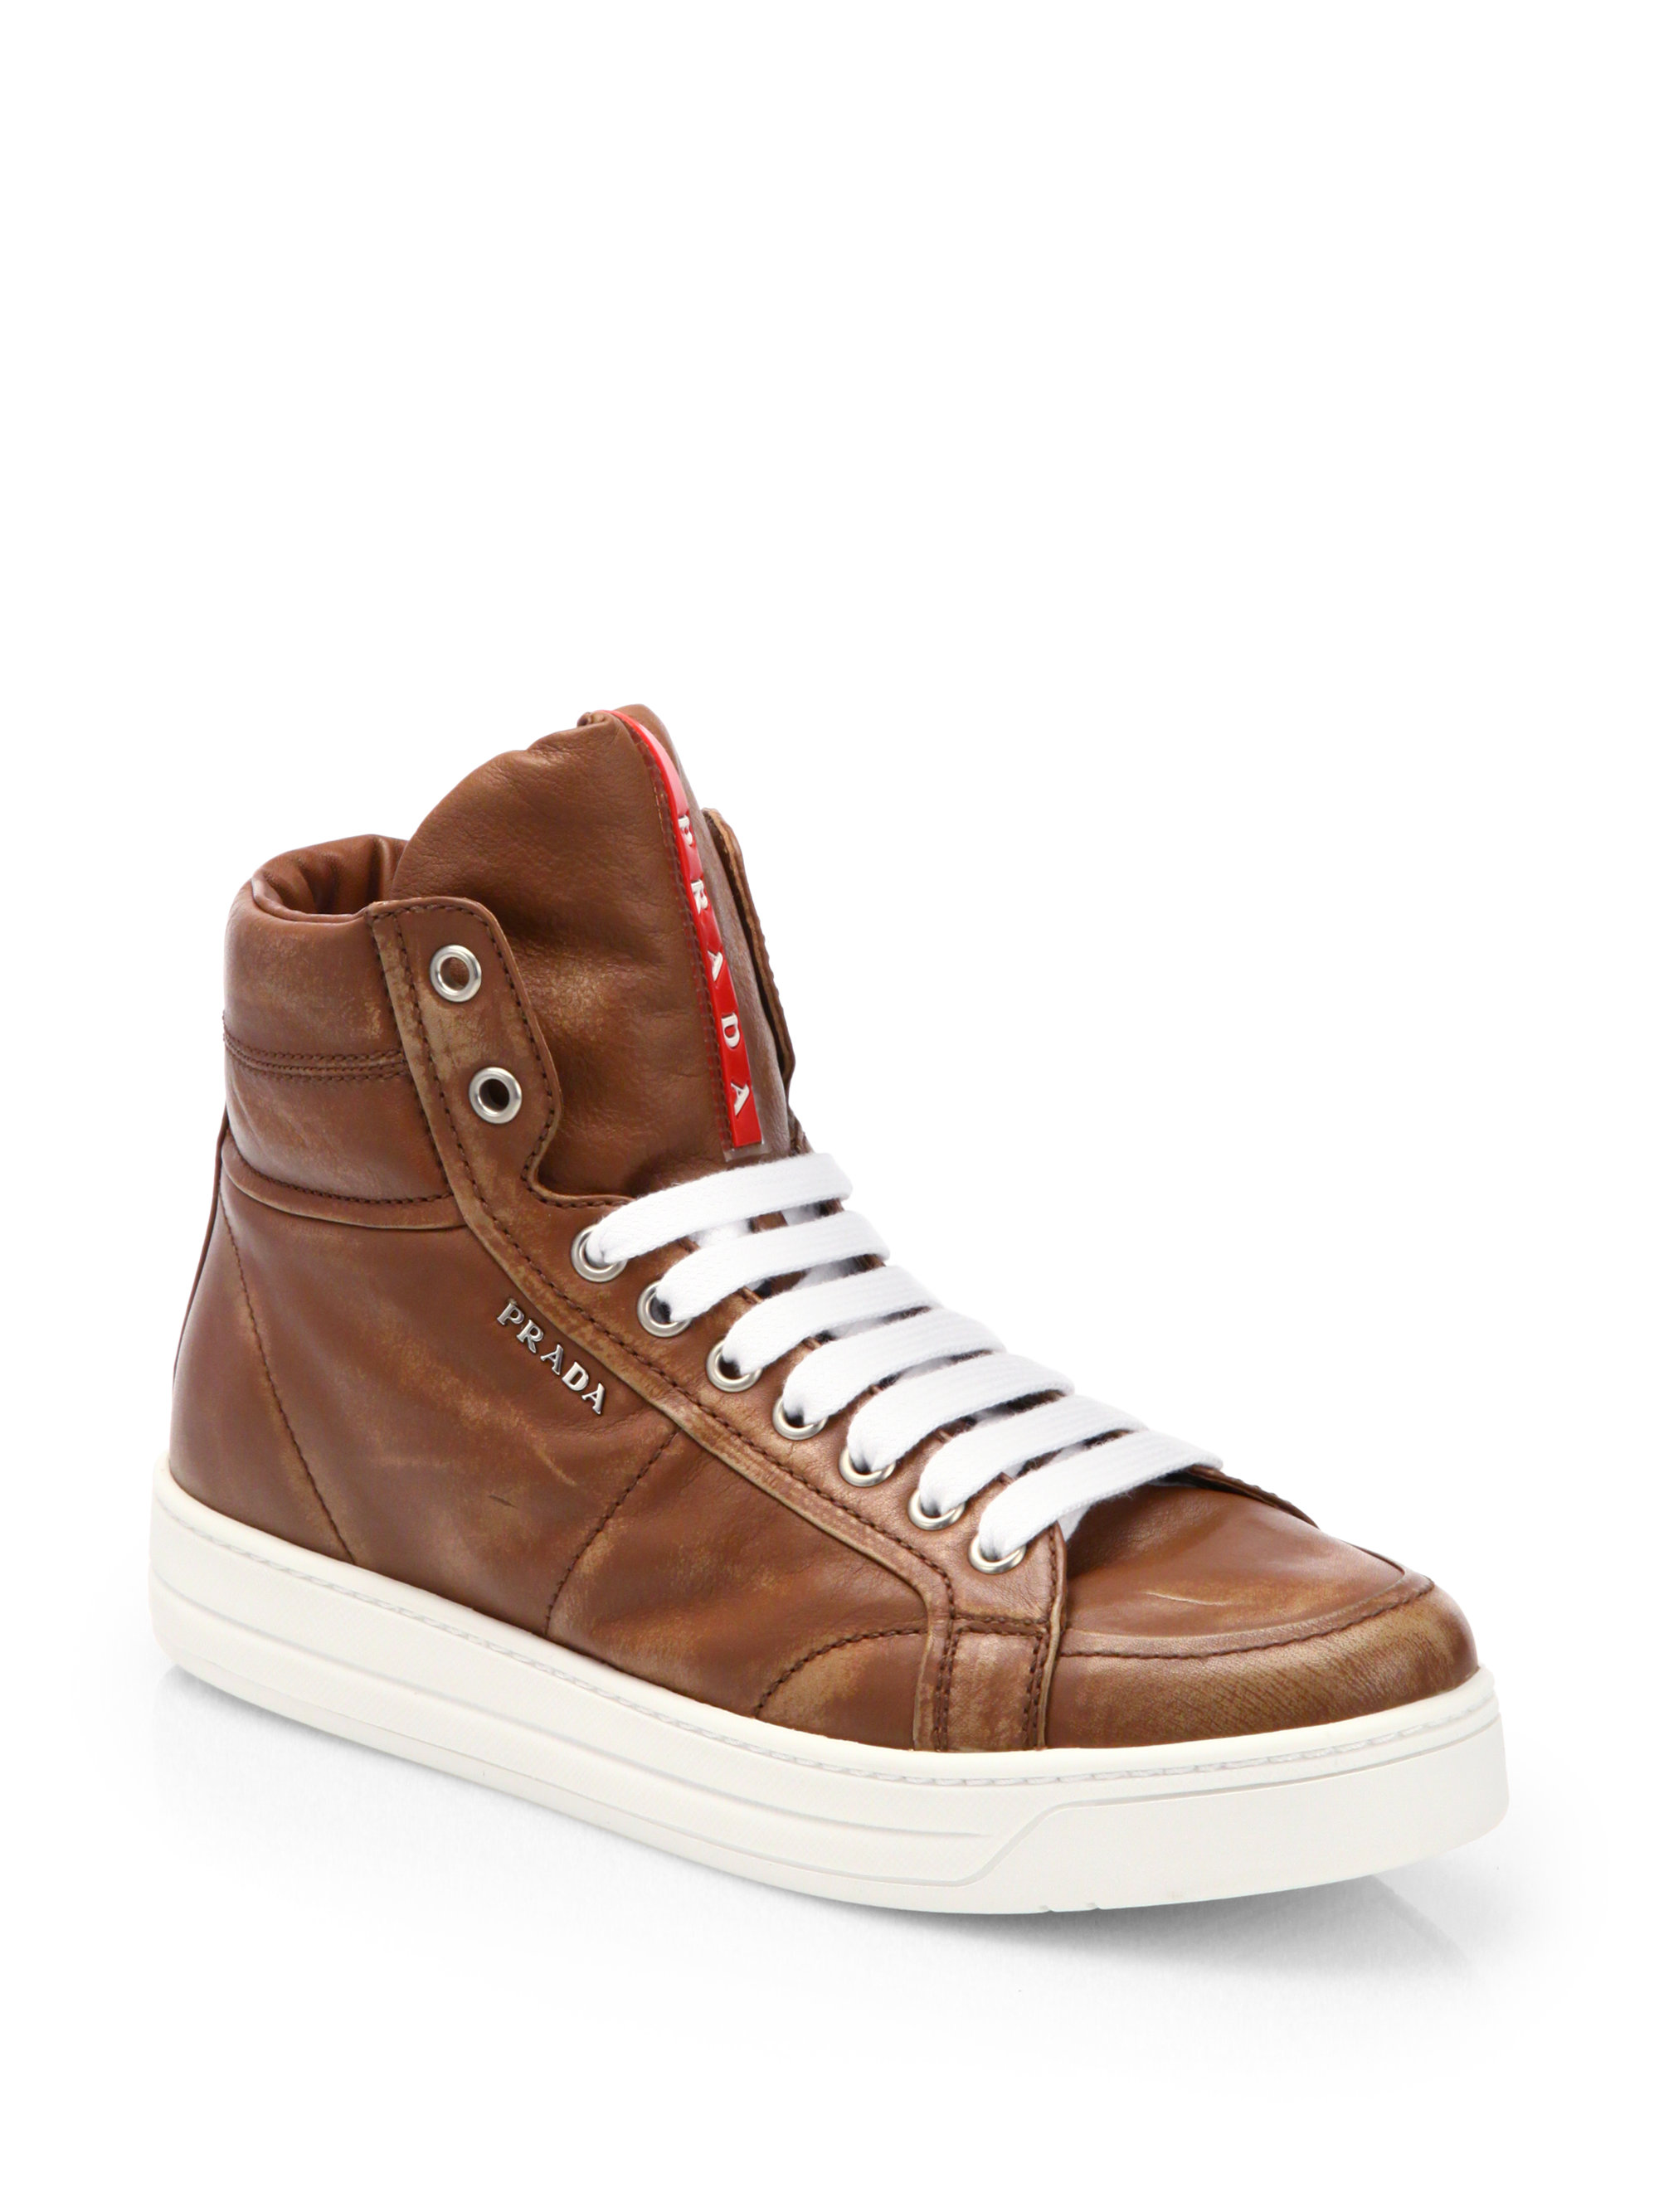 Prada Leather Laceup High Top Sneakers in Brown | Lyst